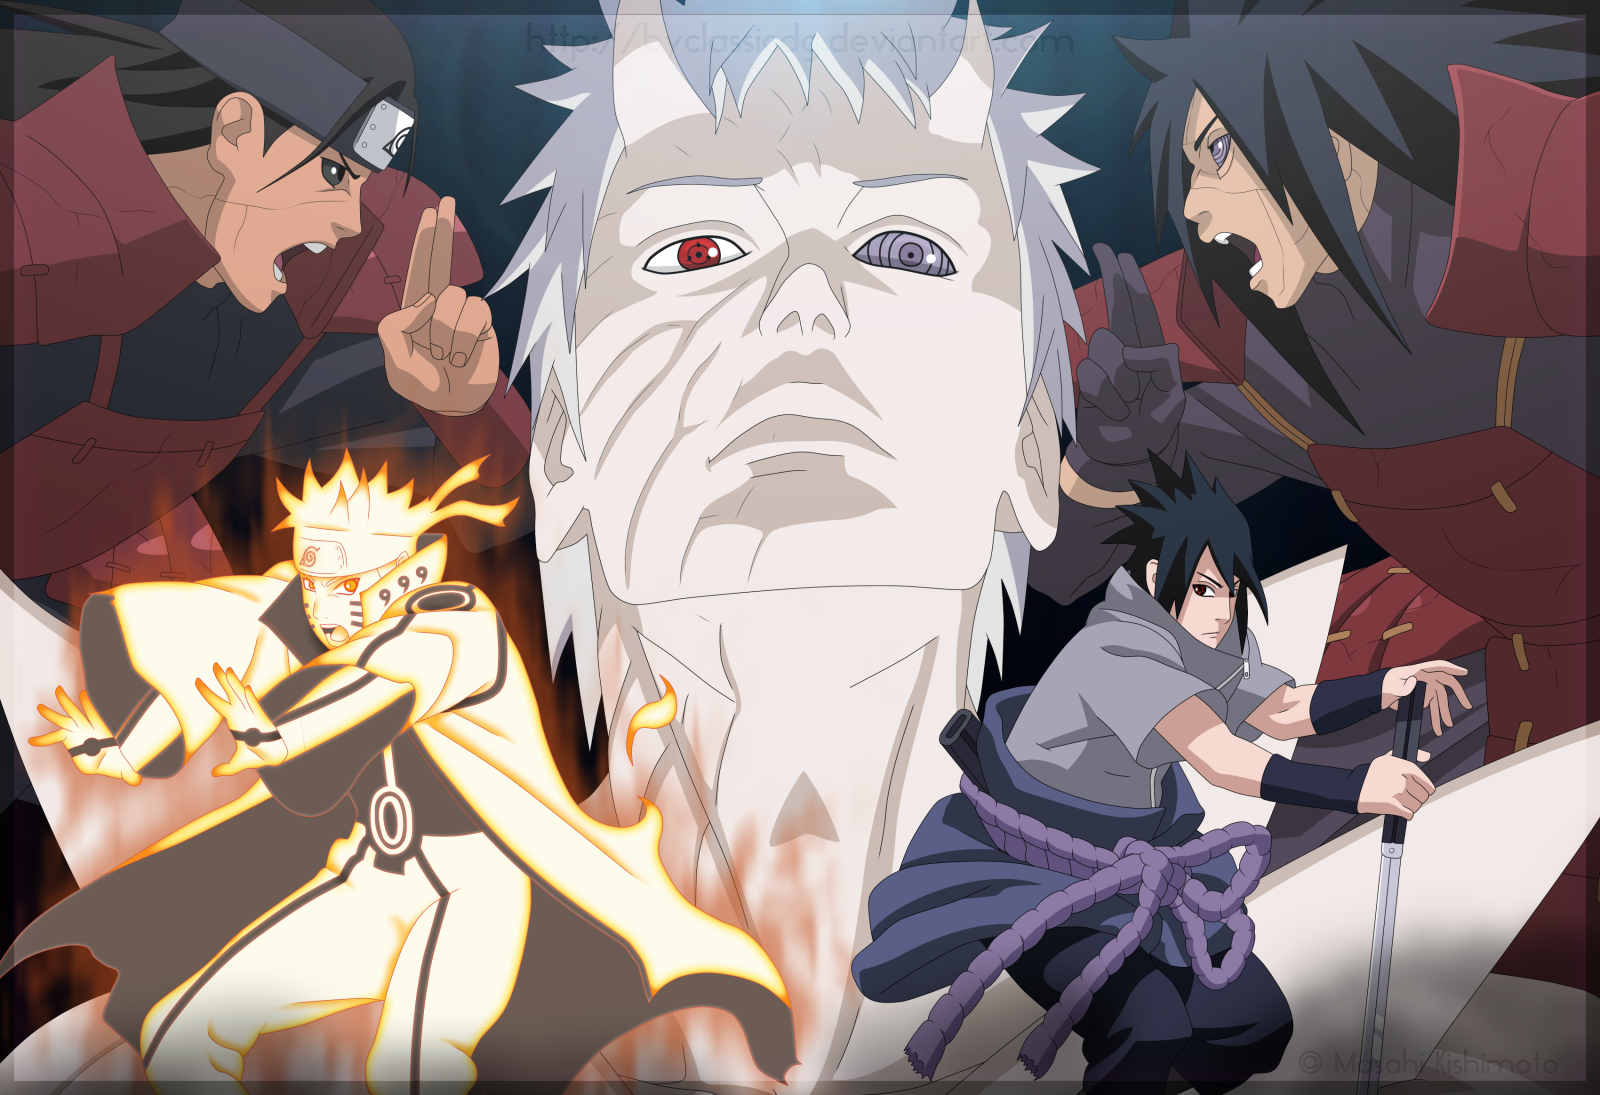 Naruto shippuden opposition by byclassicdg on deviantart naruto shippuden opposition by byclassicdg reheart Choice Image